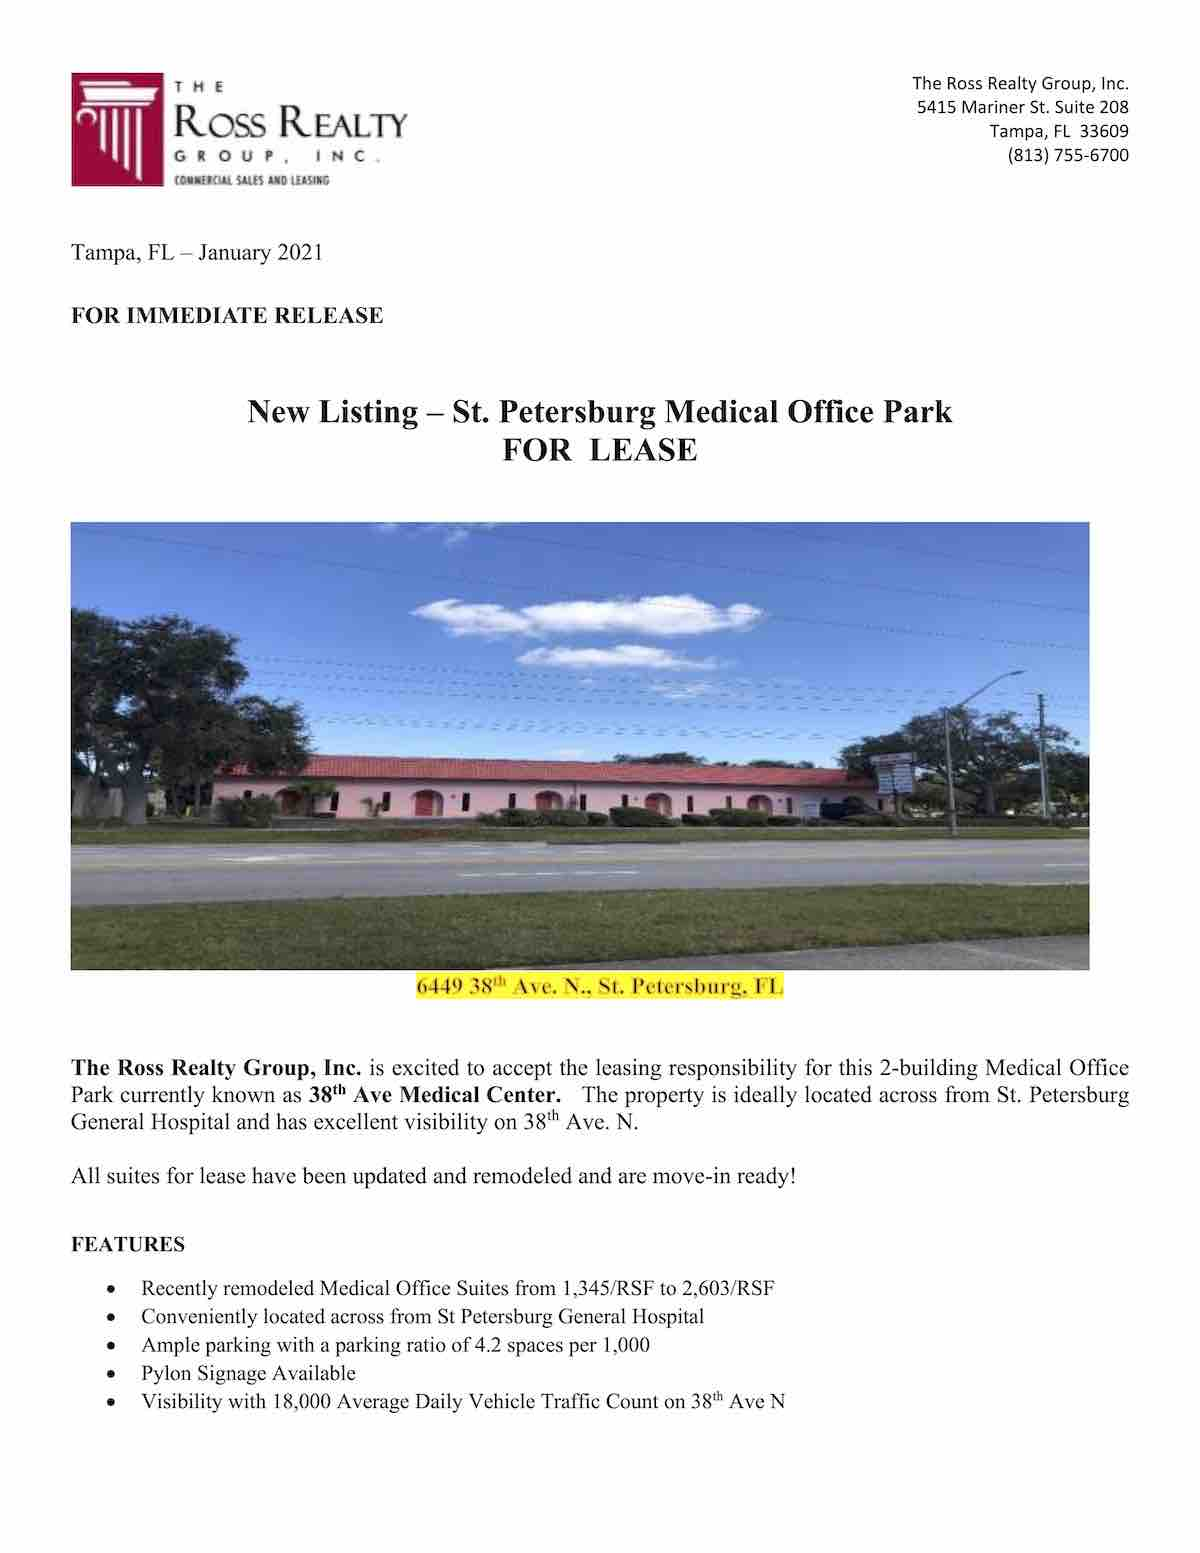 Tampa Commercial Real Estate - RRG-NewListingPR-38th Medical - 6449 38th Ave. N., St. Petersburg, FL 1-21 P1